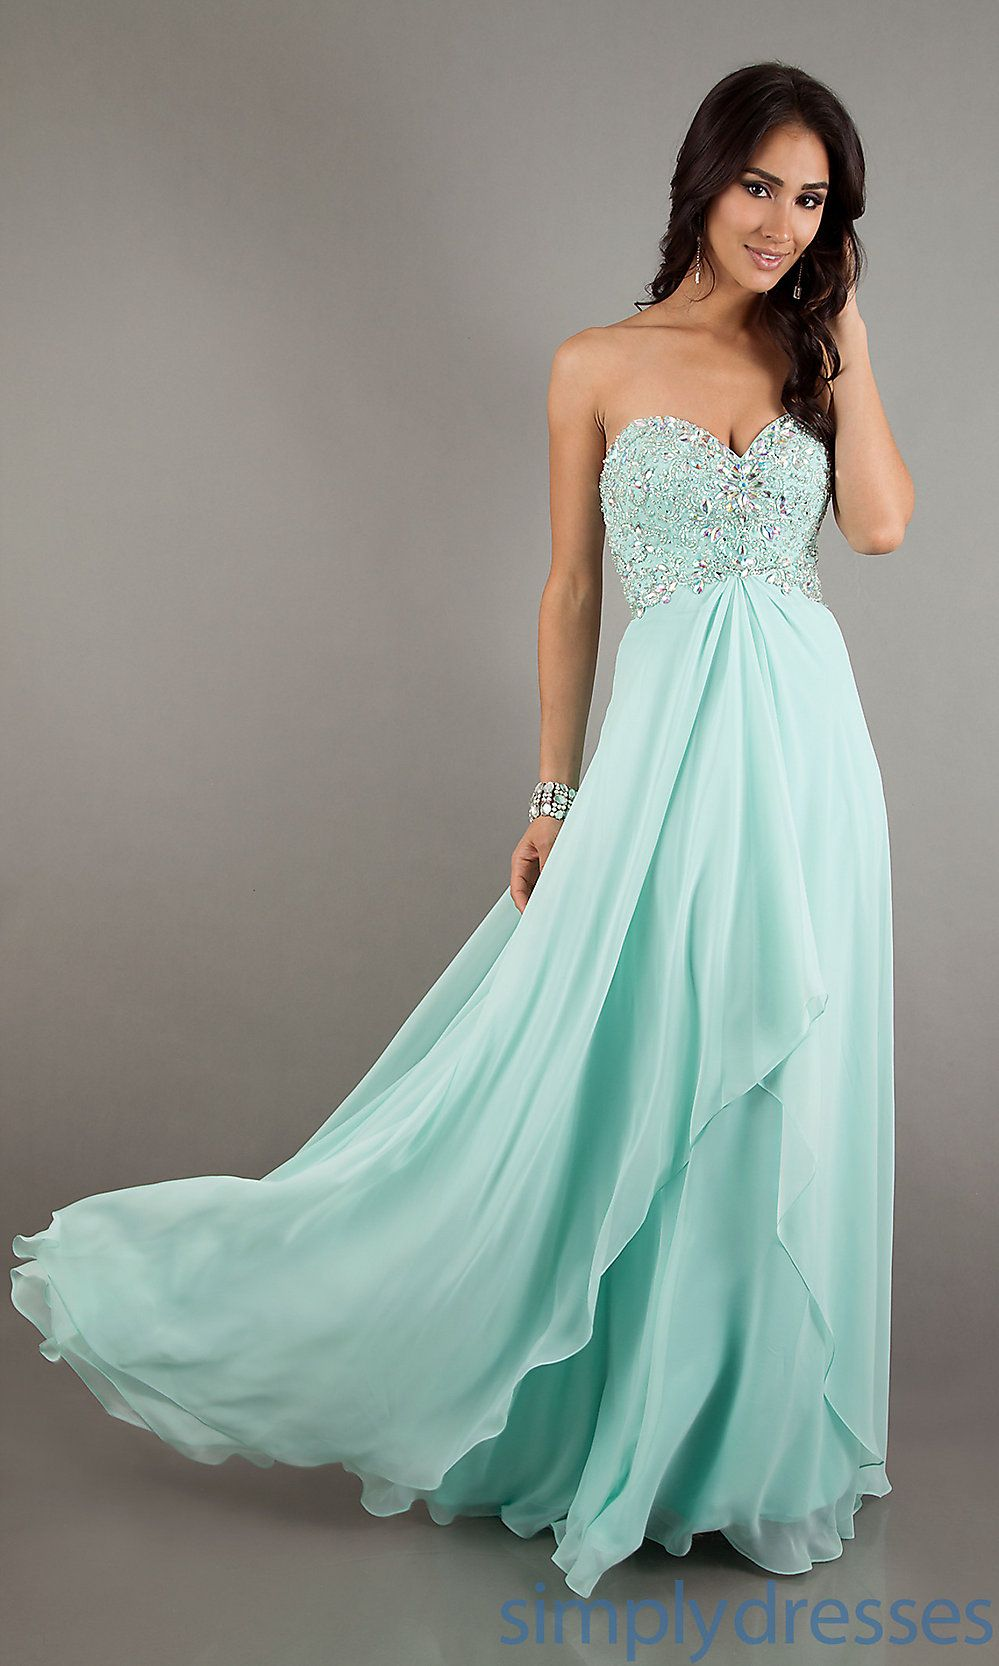 Mint colored prom dresses long strapless prom dresses mori lee